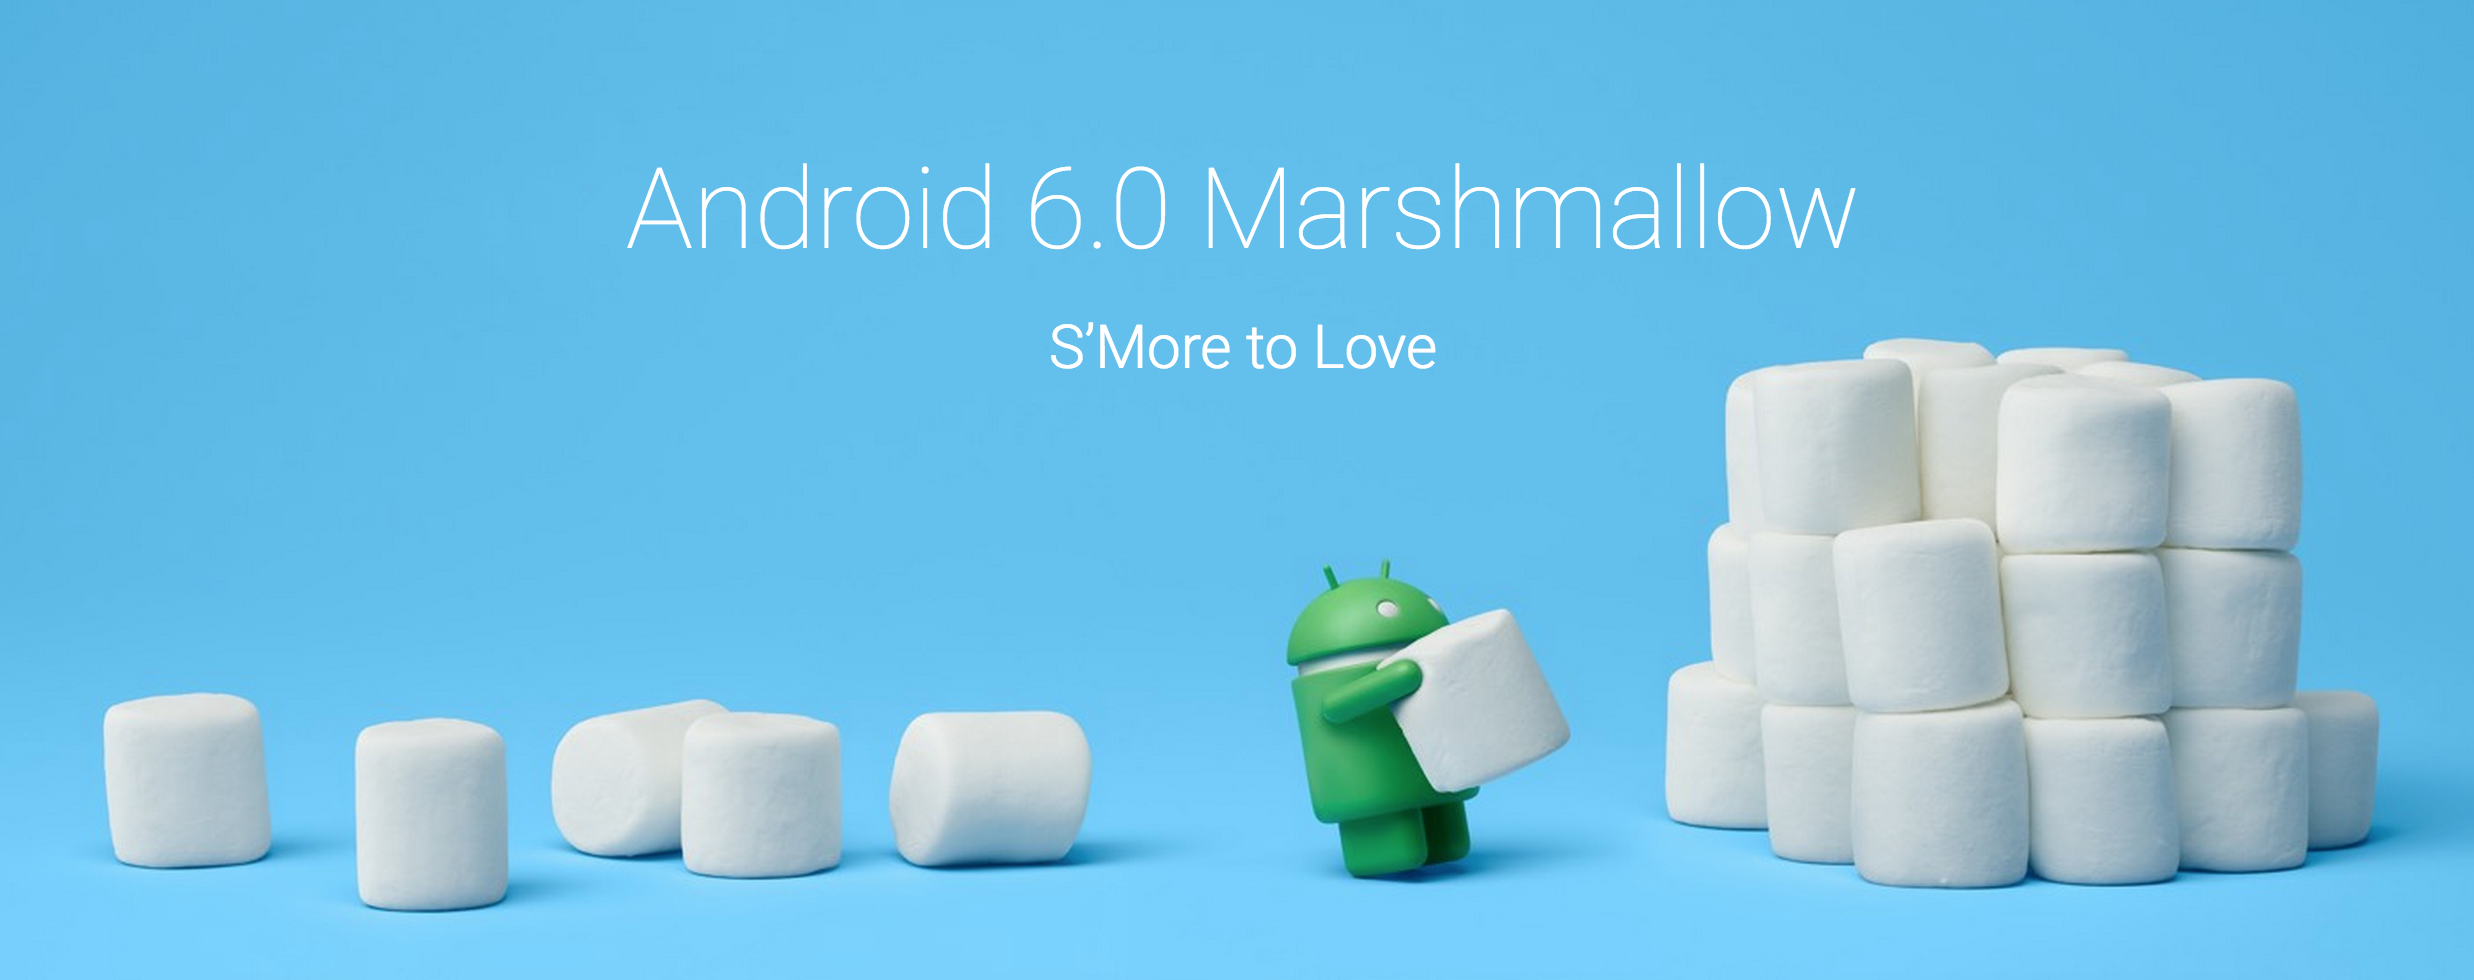 Android 6.0 Marshmallow-1